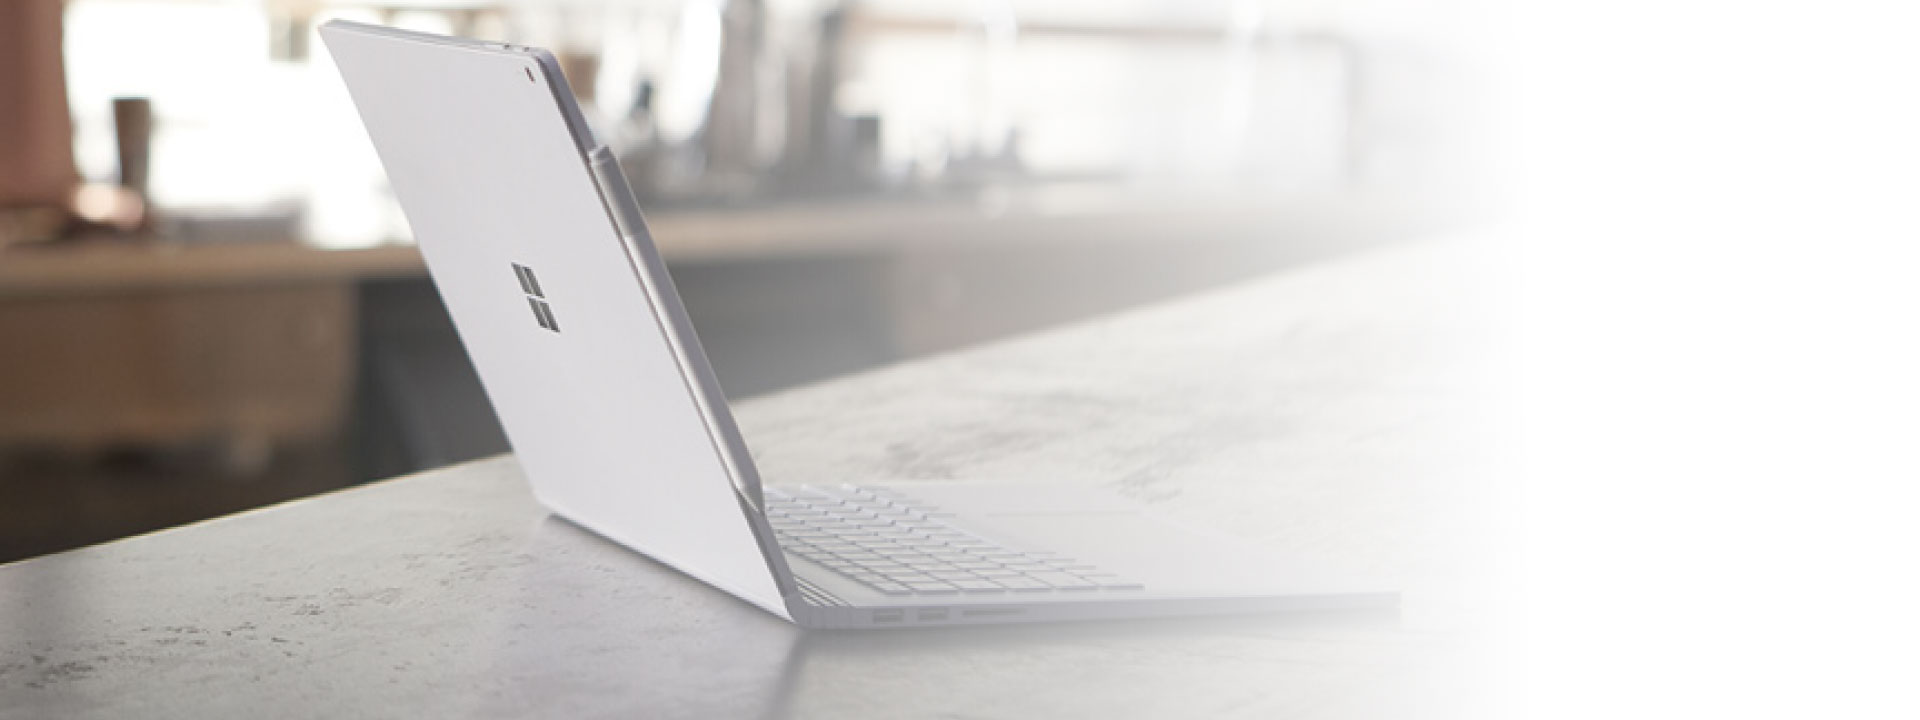 Laptop on table with windows 10